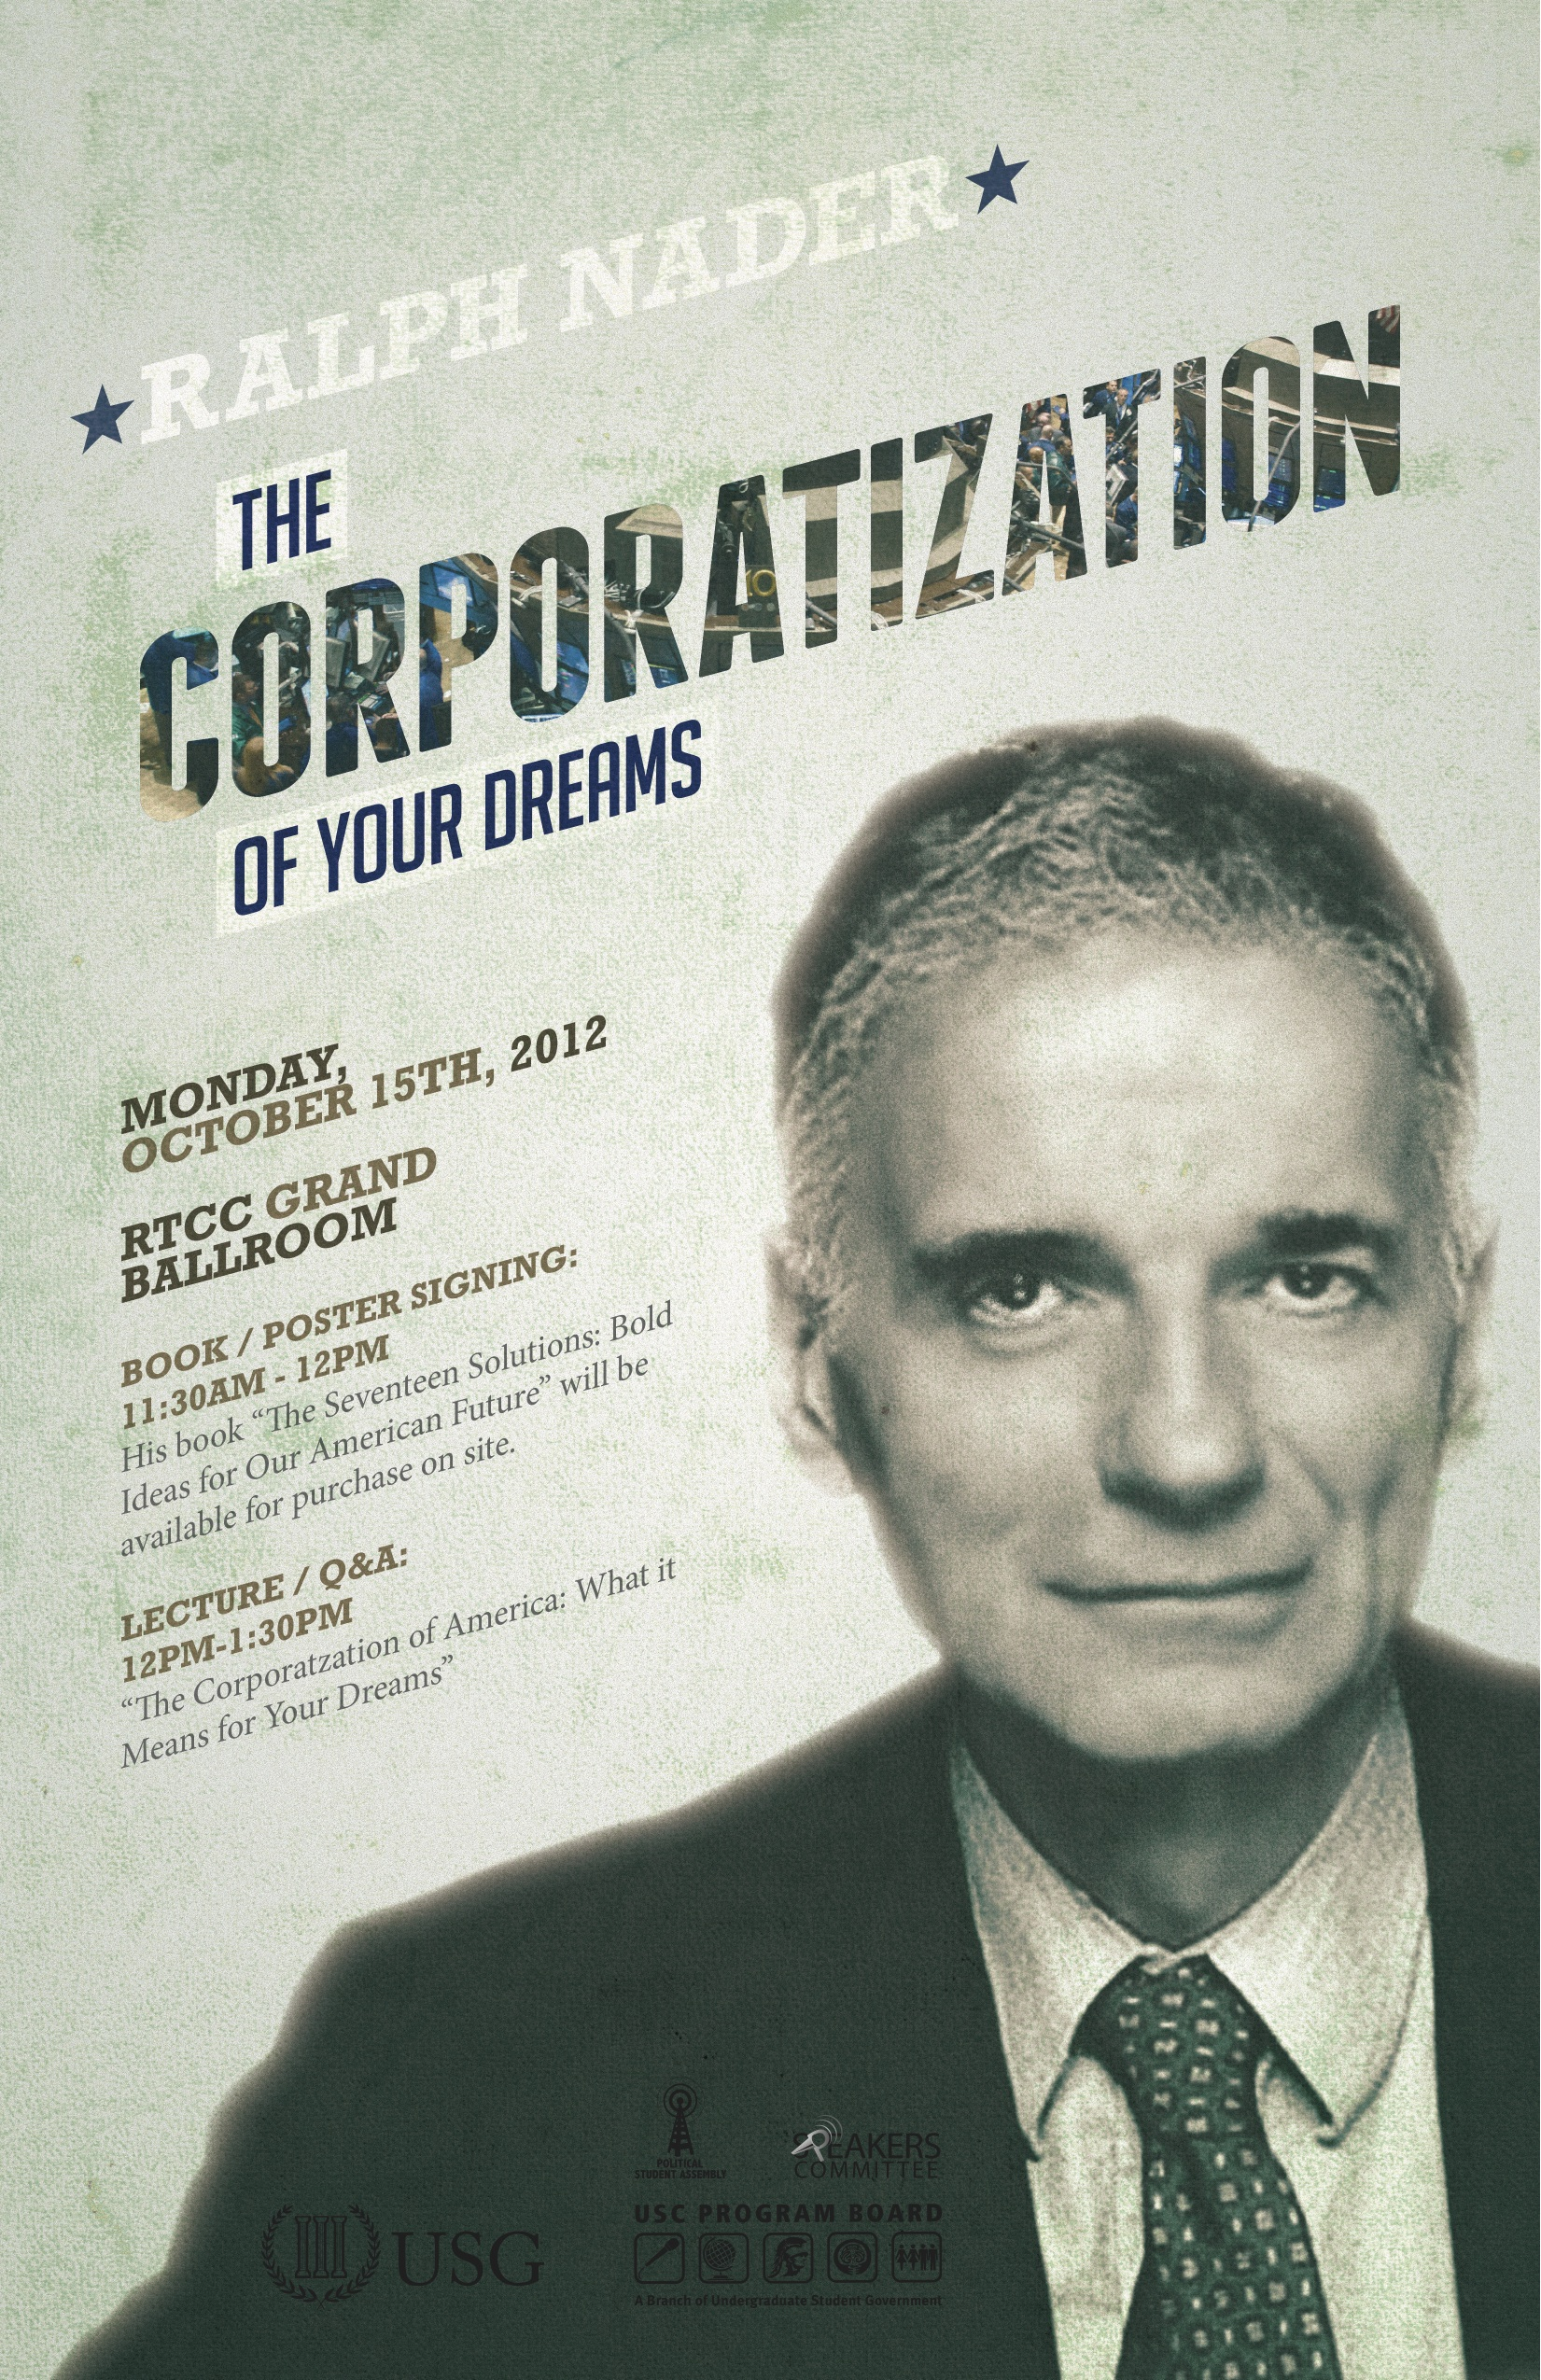 The Coropratization of Your Dreams with Ralph Nader (2012)